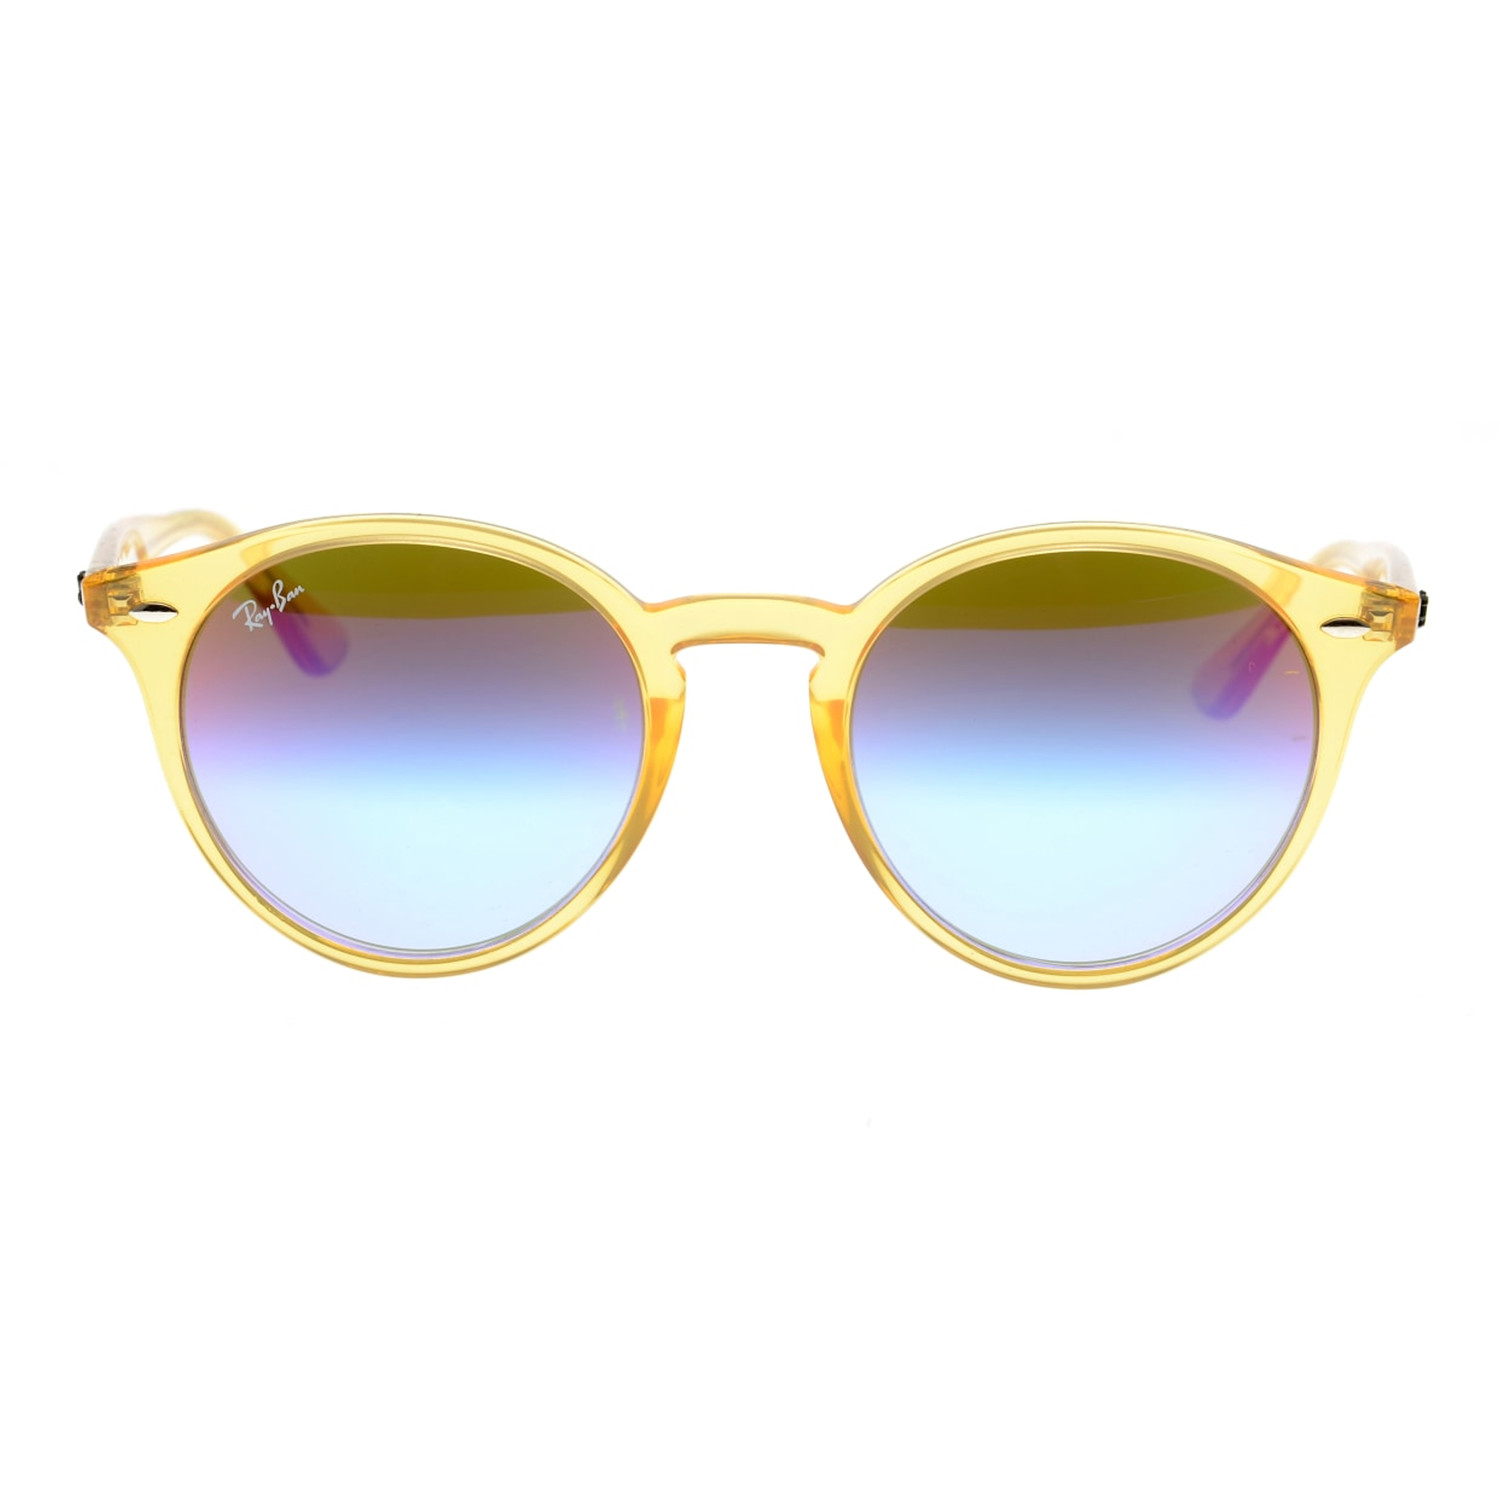 0d9ae1f4f5 Injected Sunglasses    Yellow + Green Blue Gradient Violet - Luxury ...